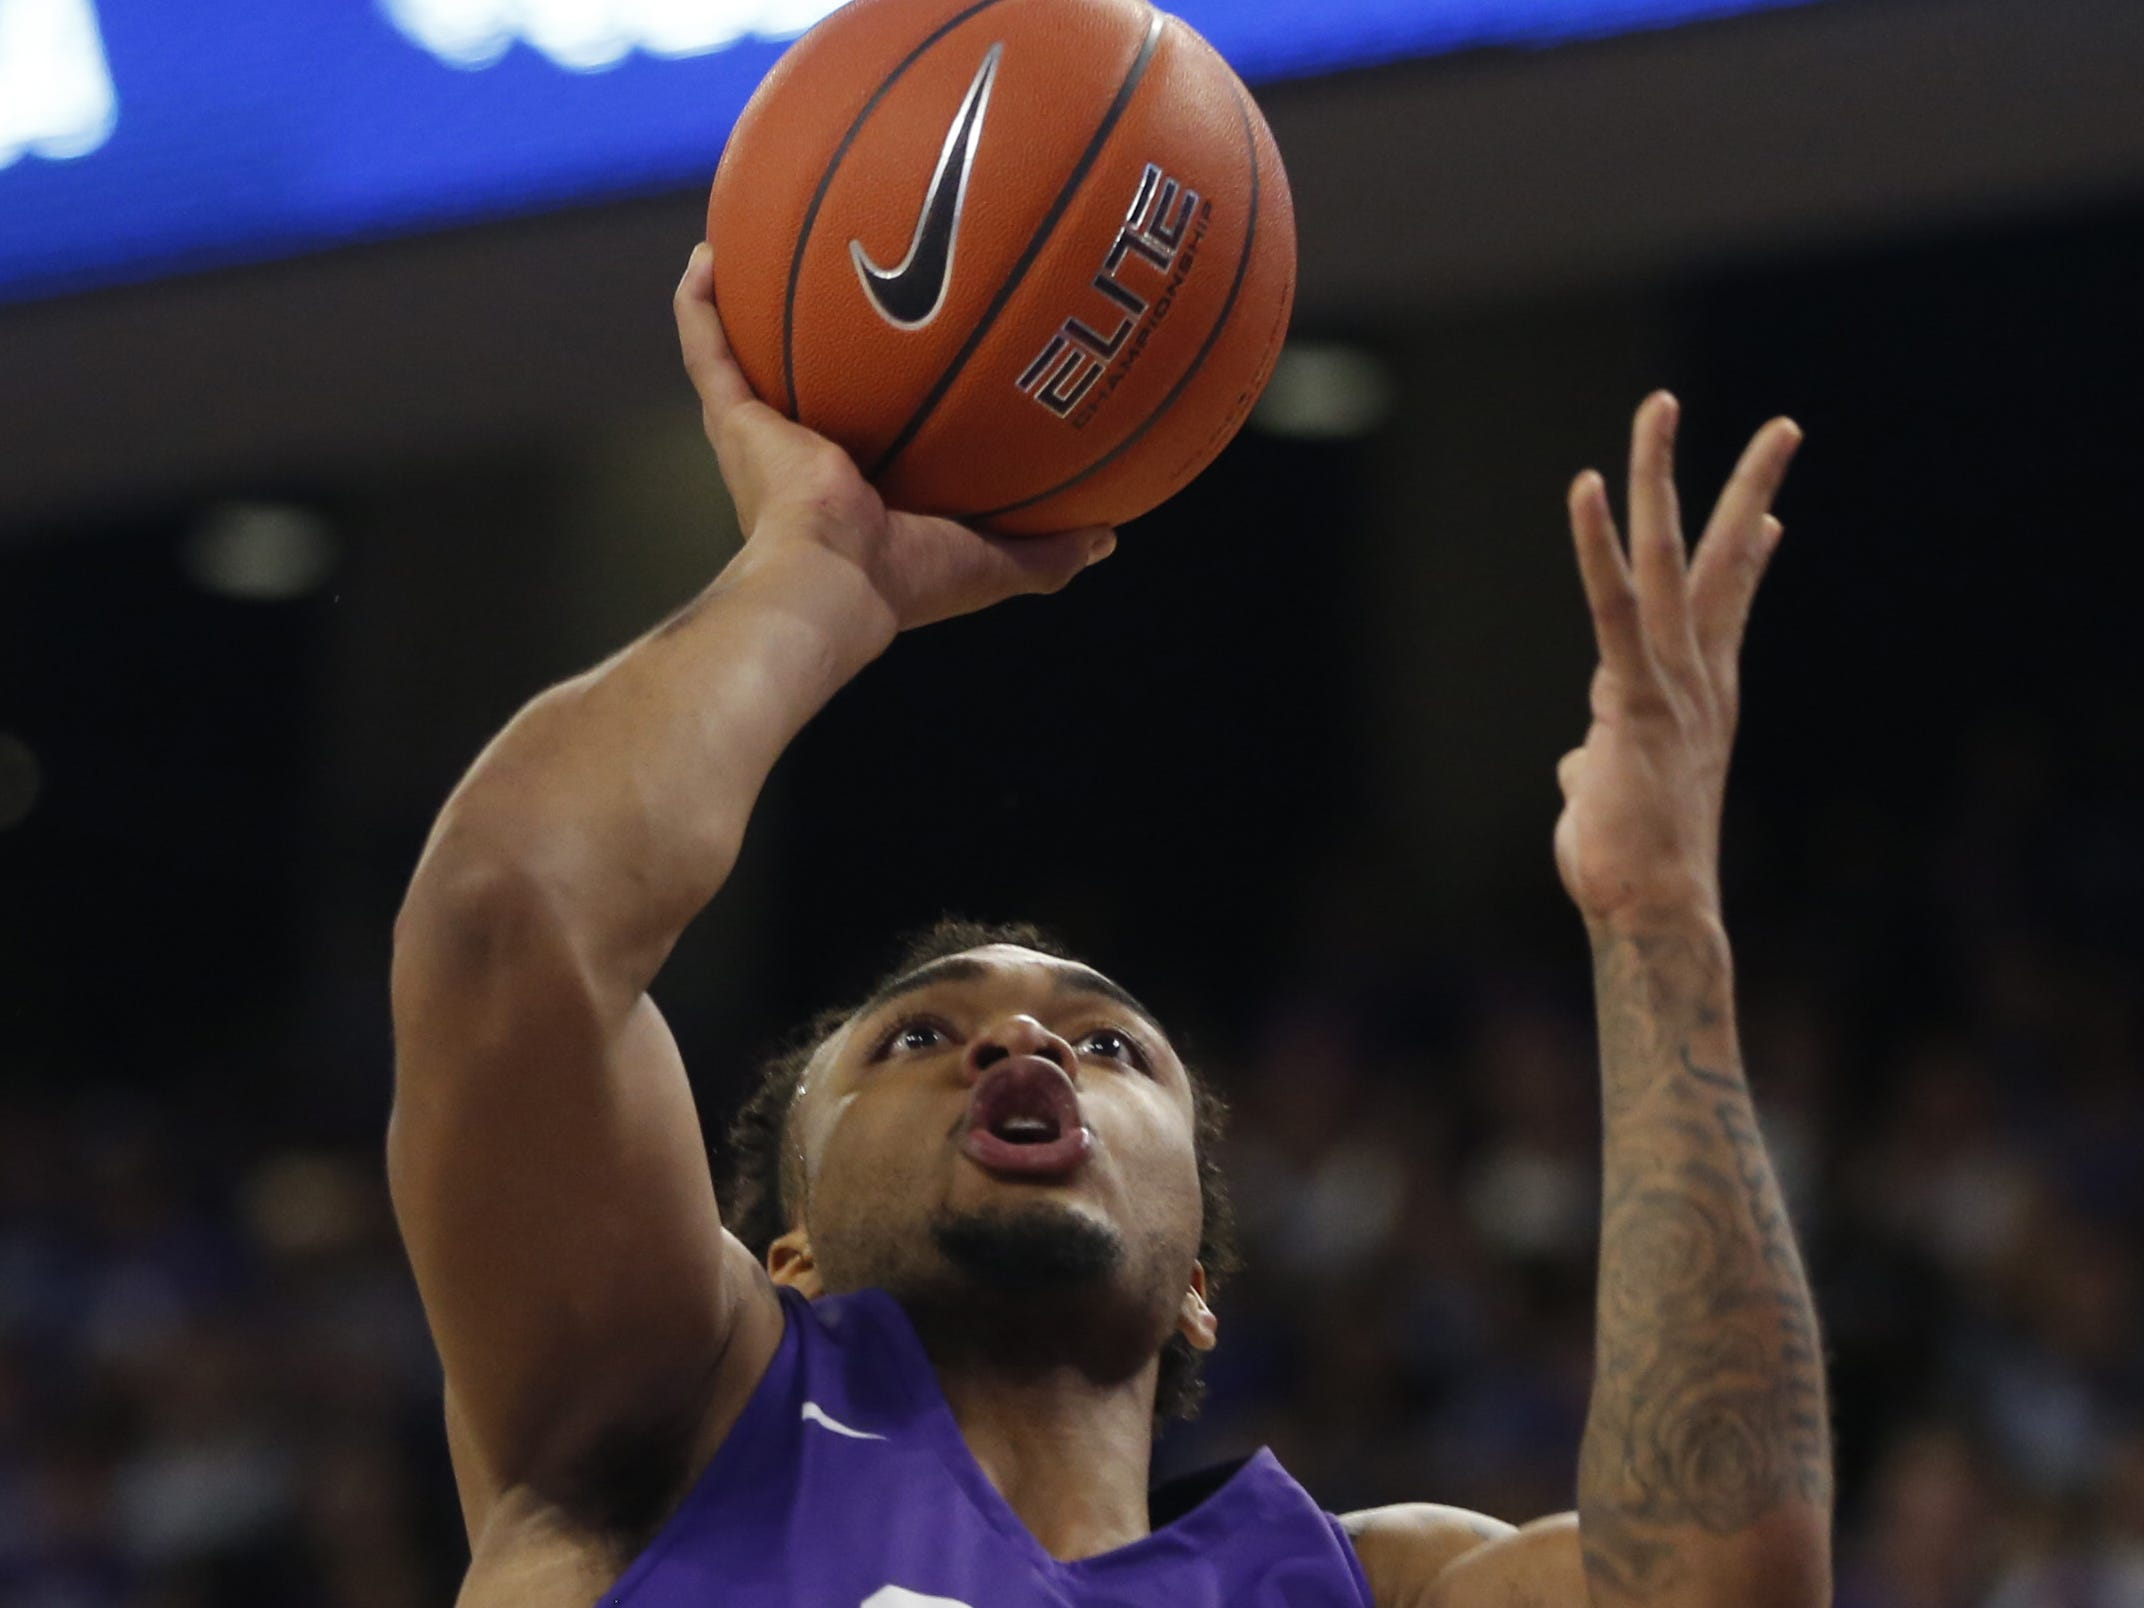 GCU's Carlos Johnson (23) shoots against New Mexico State's Clayton Henry (5) during the first half at Grand Canyon University Arena in Phoenix, Ariz. on February 9, 2019.